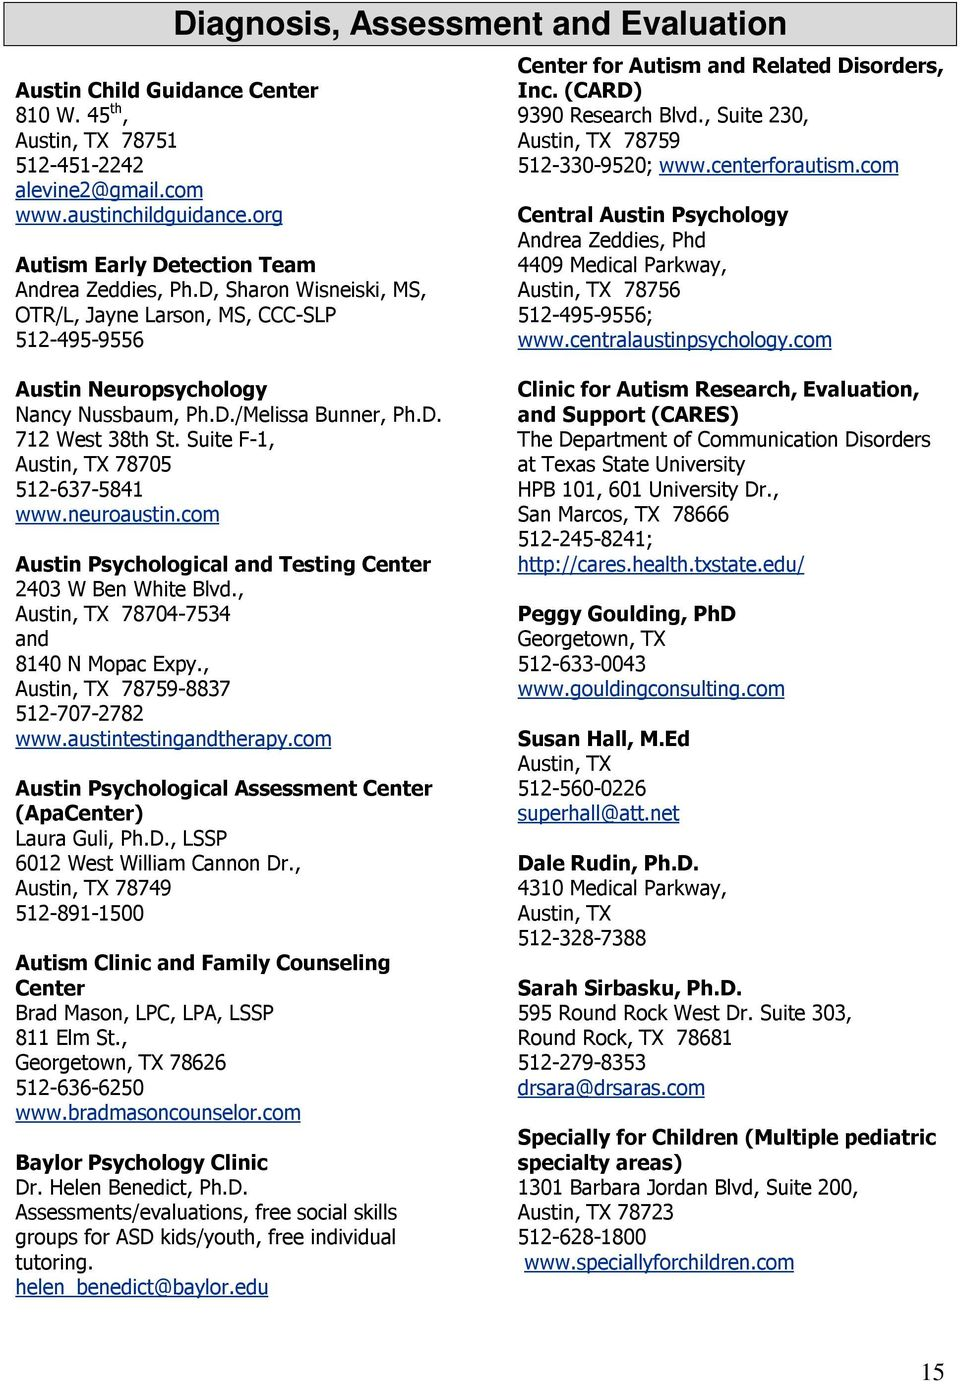 D, Sharon Wisneiski, MS, OTR/L, Jayne Larson, MS, CCC-SLP 512-495-9556 Center for Autism and Related Disorders, Inc. (CARD) 9390 Research Blvd., Suite 230, Austin, TX 78759 512-330-9520; www.